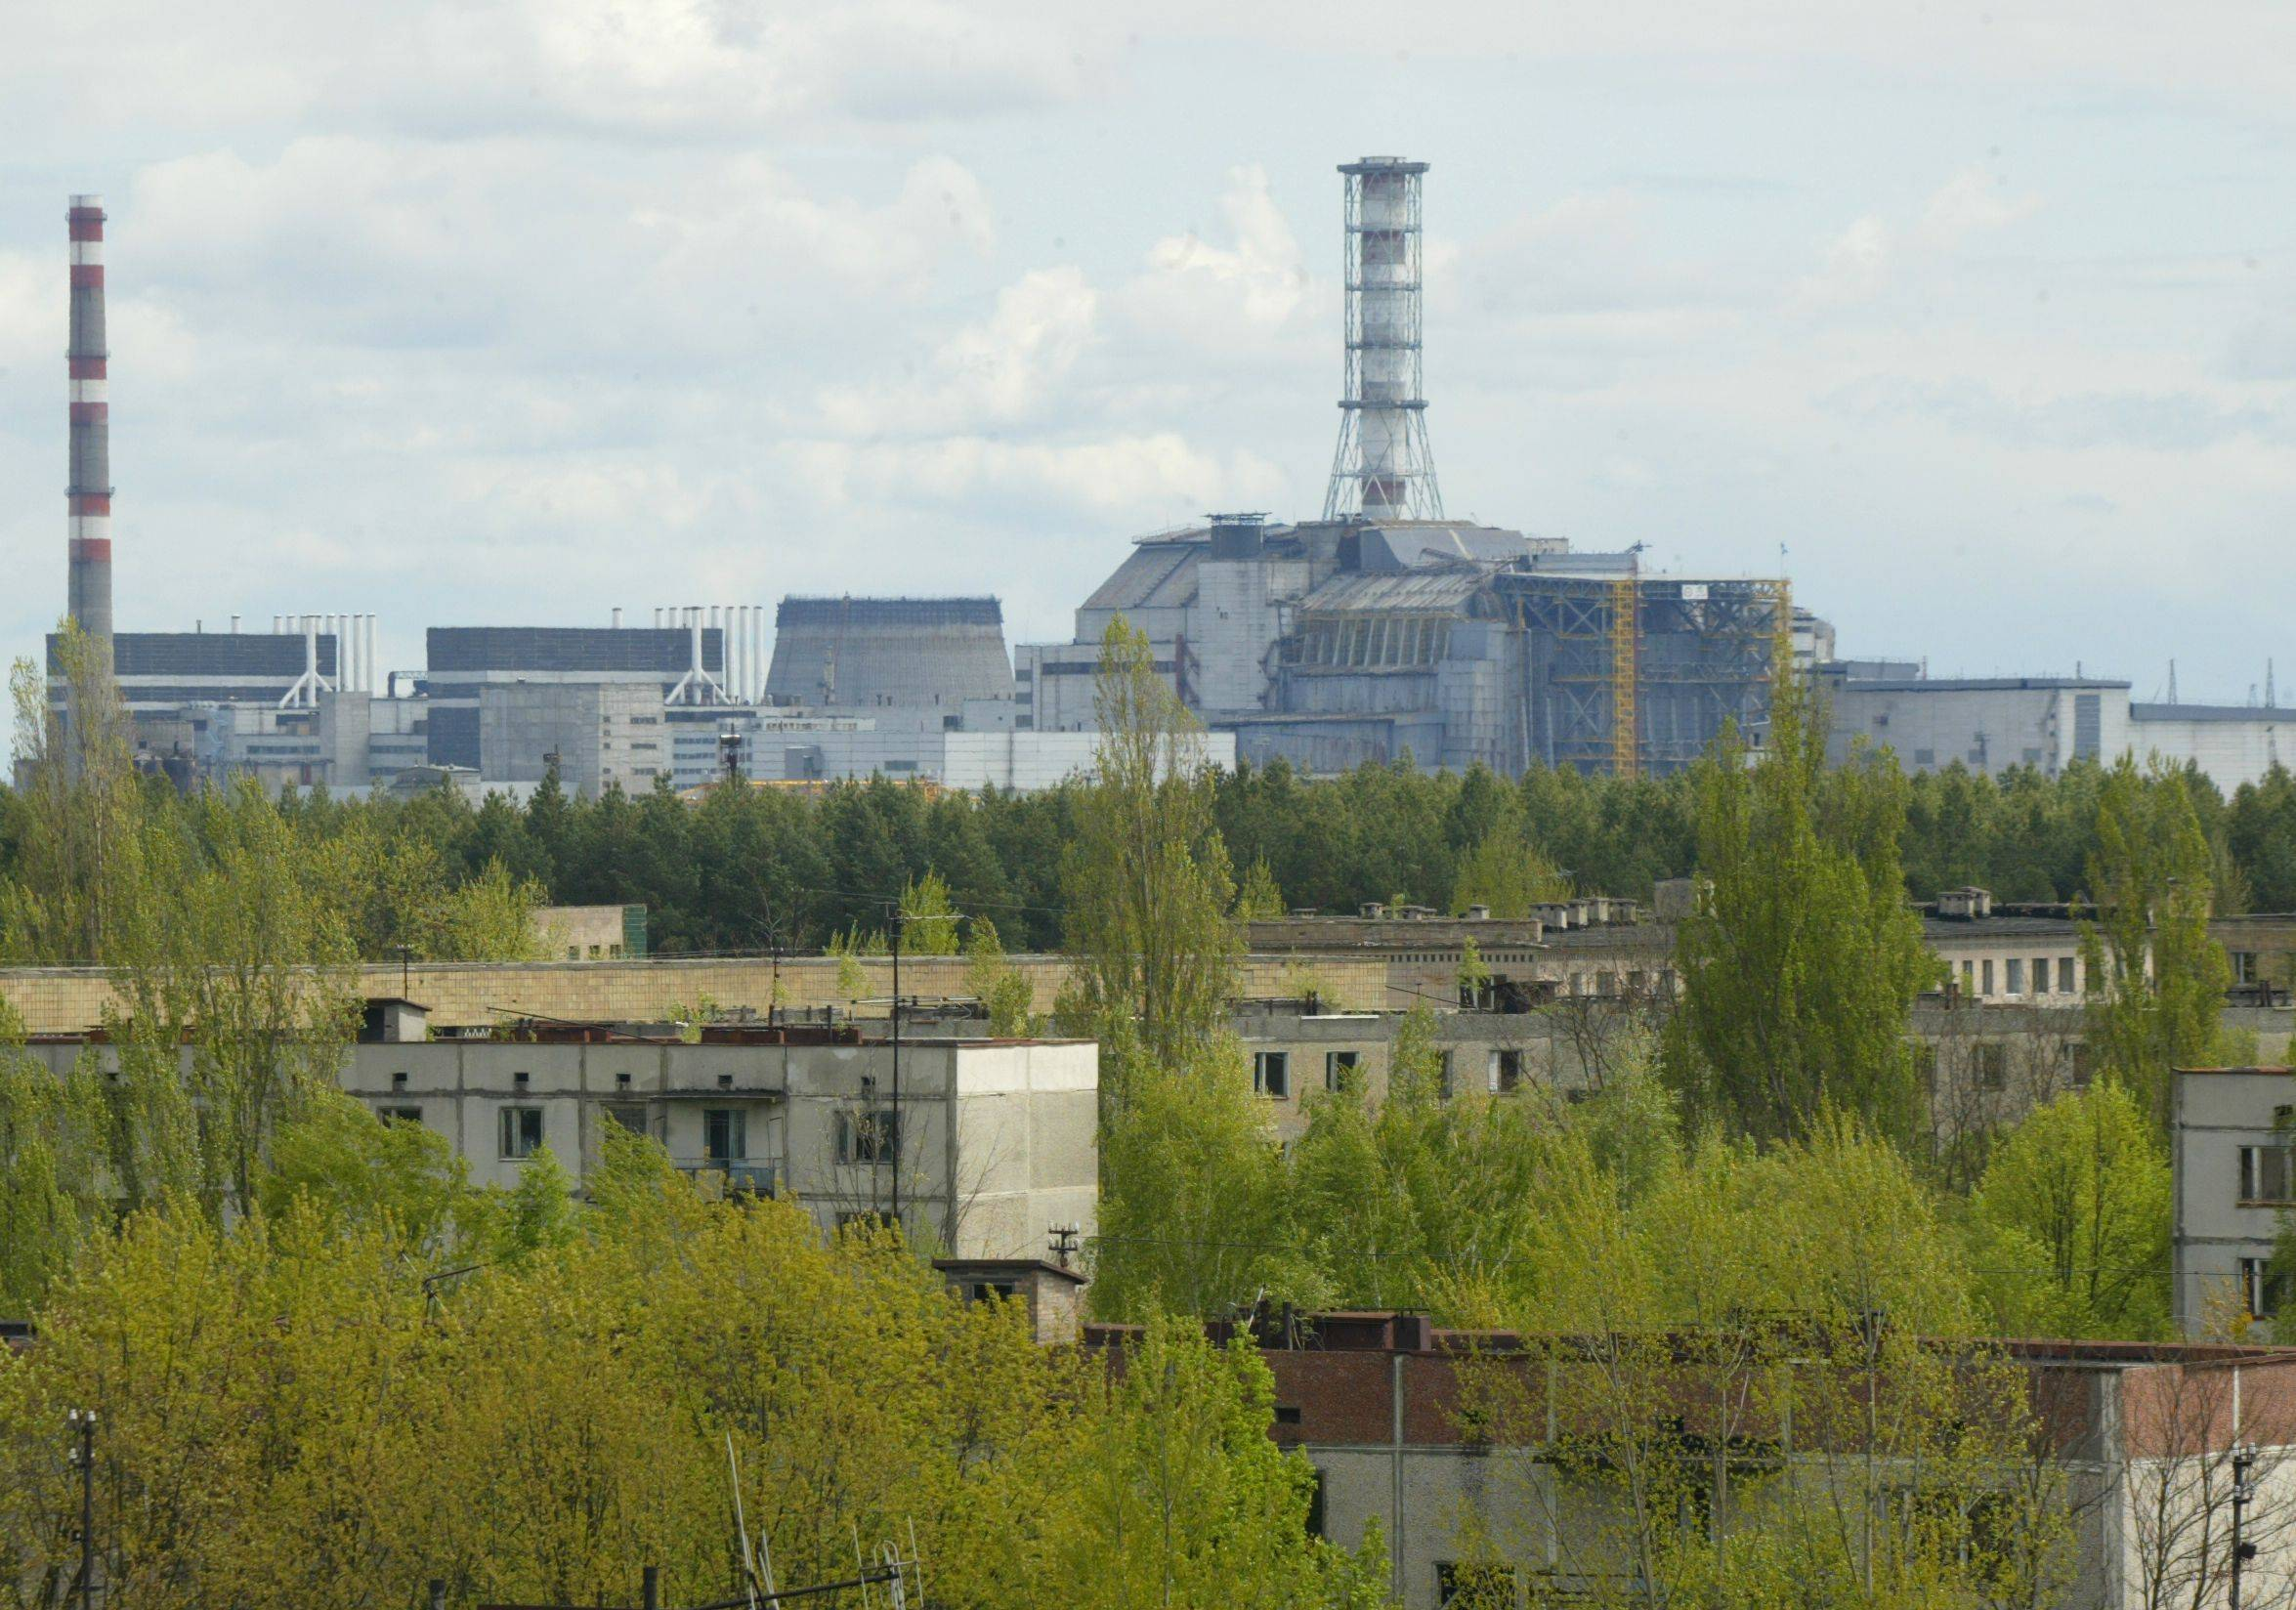 The closed Chernobyl nuclear power plant looms over abandoned houses in the town of Pripyat, which sits inside a contamination zone. A 1986 nuclear catastrophe caused dozens of immediate fatalities and other lingering health problems.